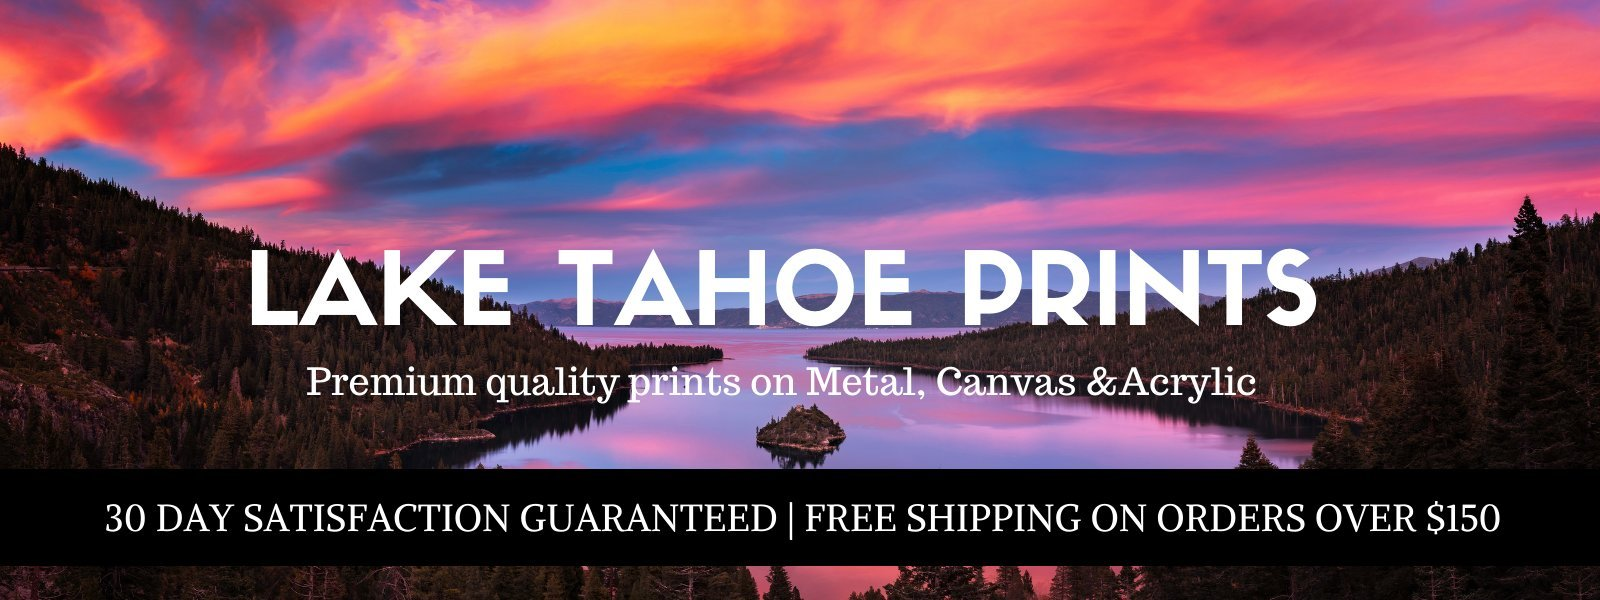 Lake Tahoe Wall Art-lake tahoe prints